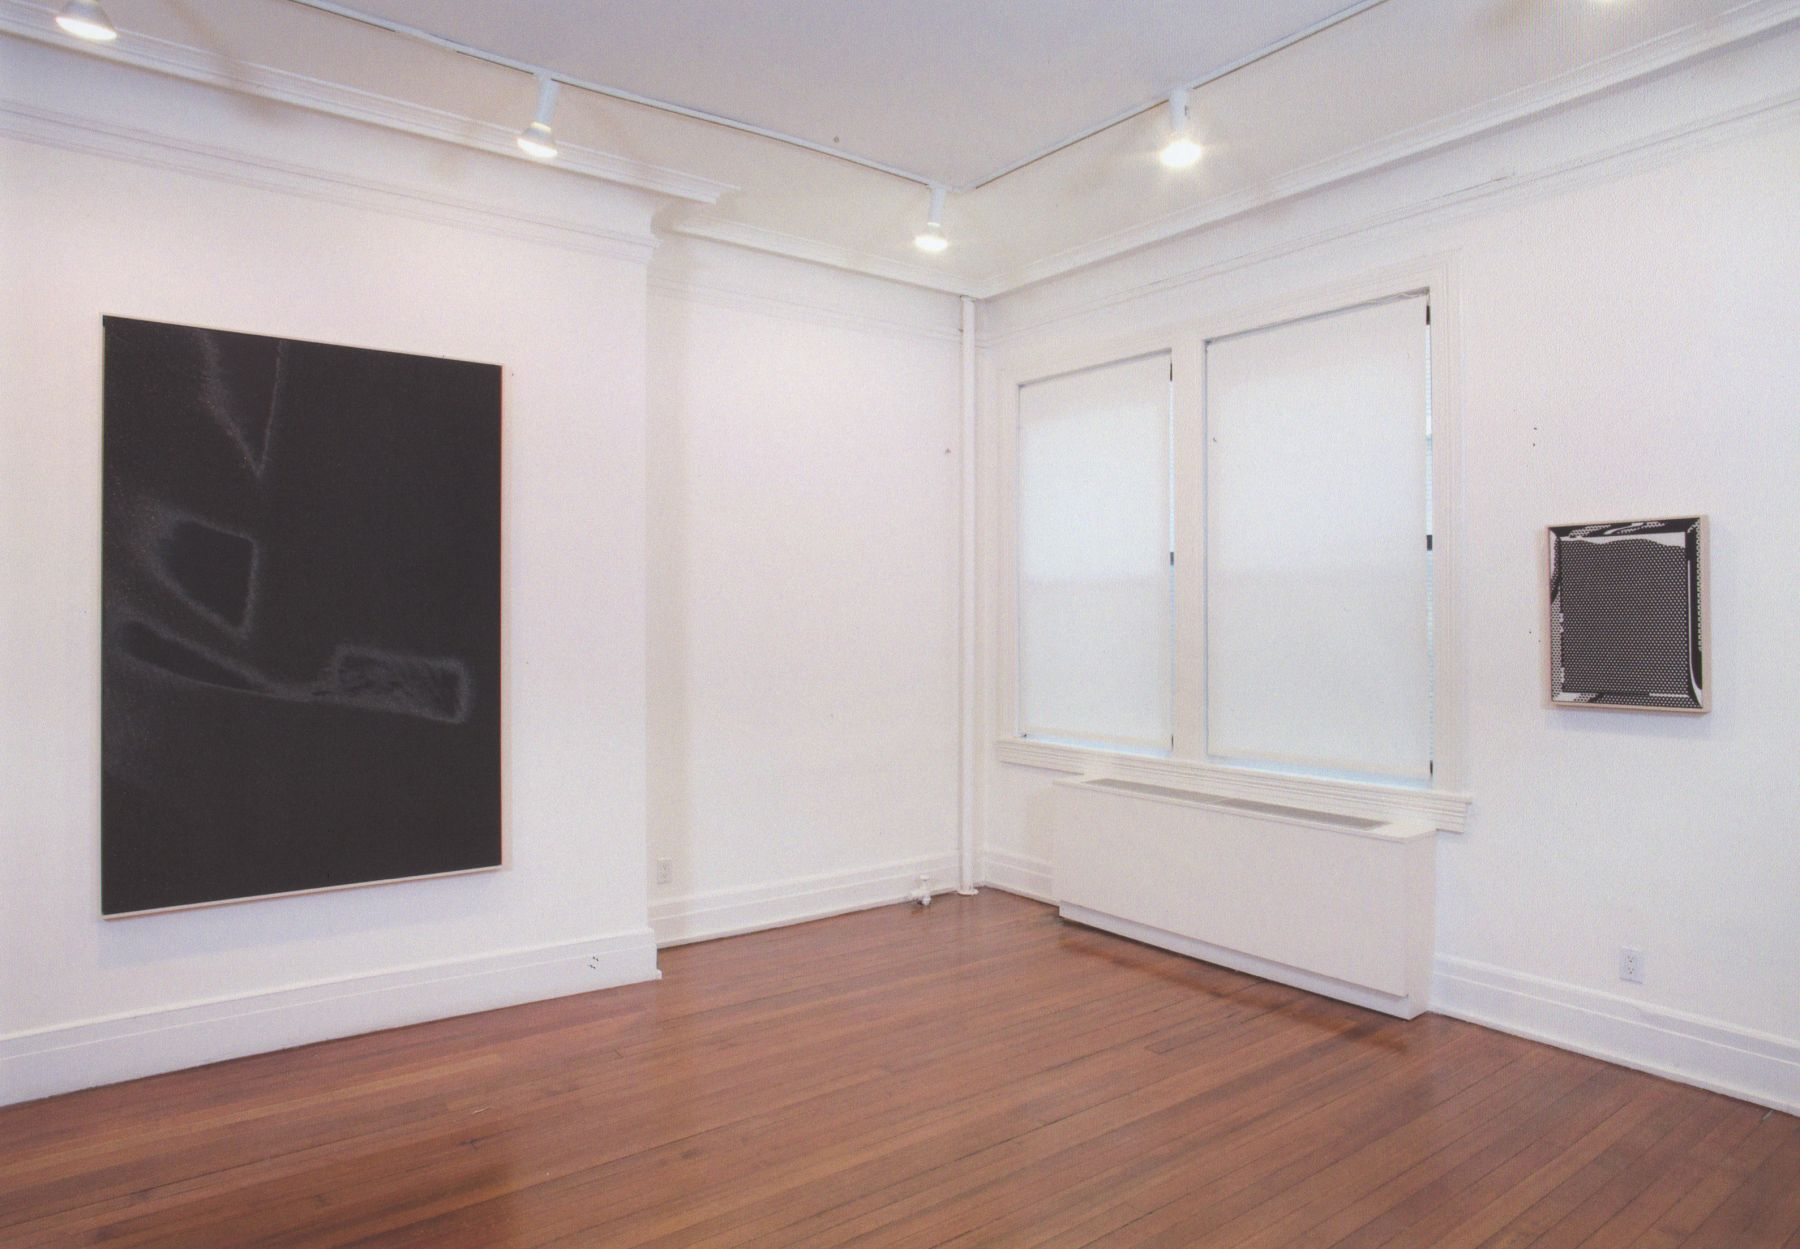 Installation view, Reflected in the Mirror There Was a Shadow, 18 EAST 77.